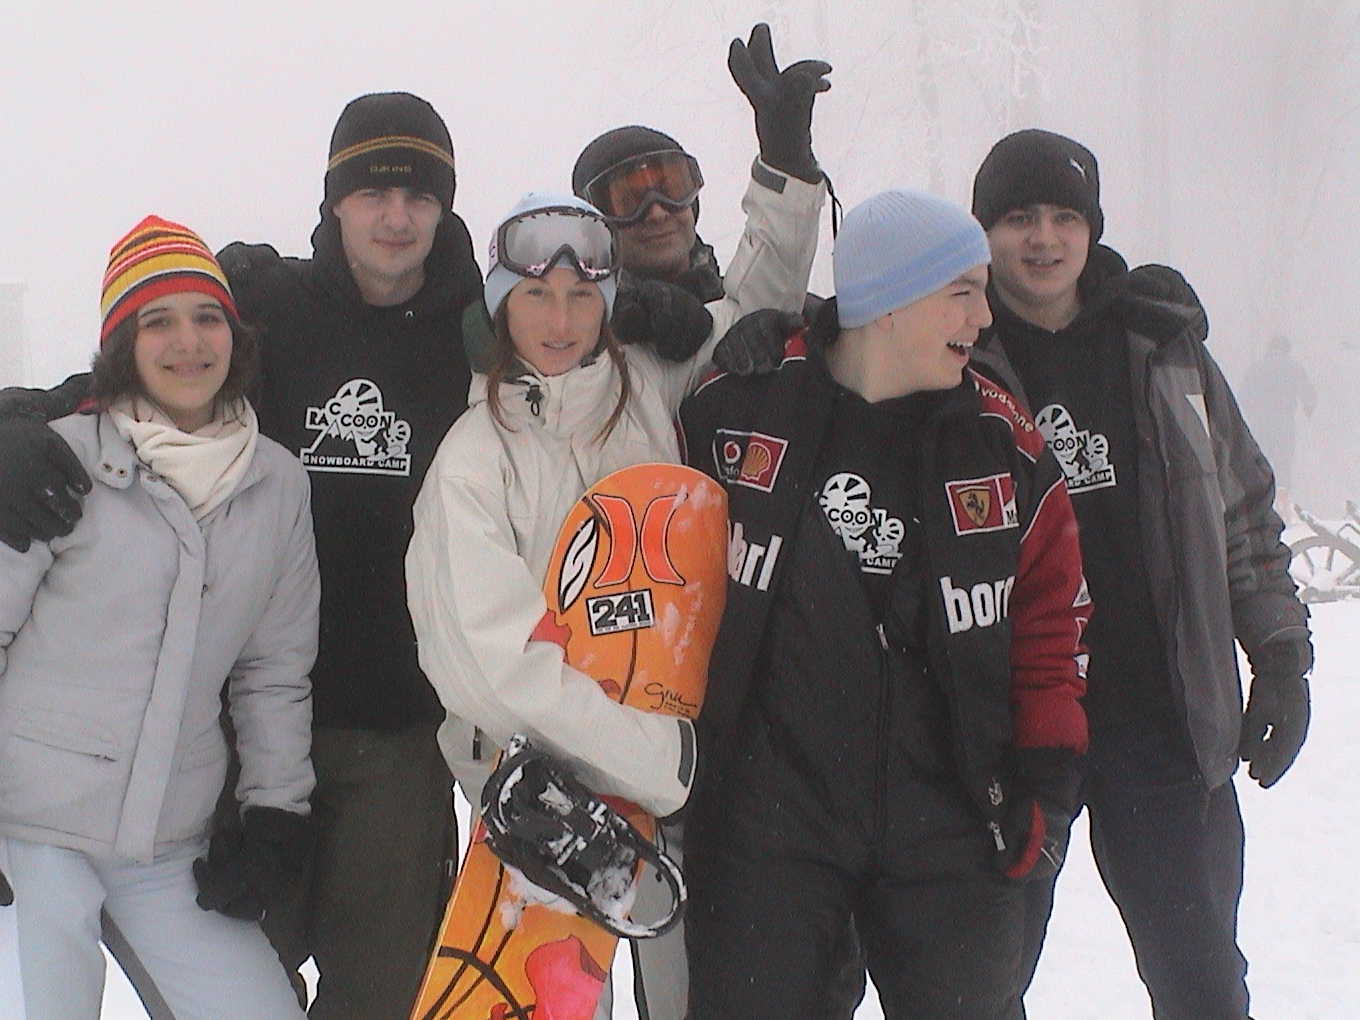 Participants of Raccoon Snowboard Programme with Tina Basich on Mt. Sljeme